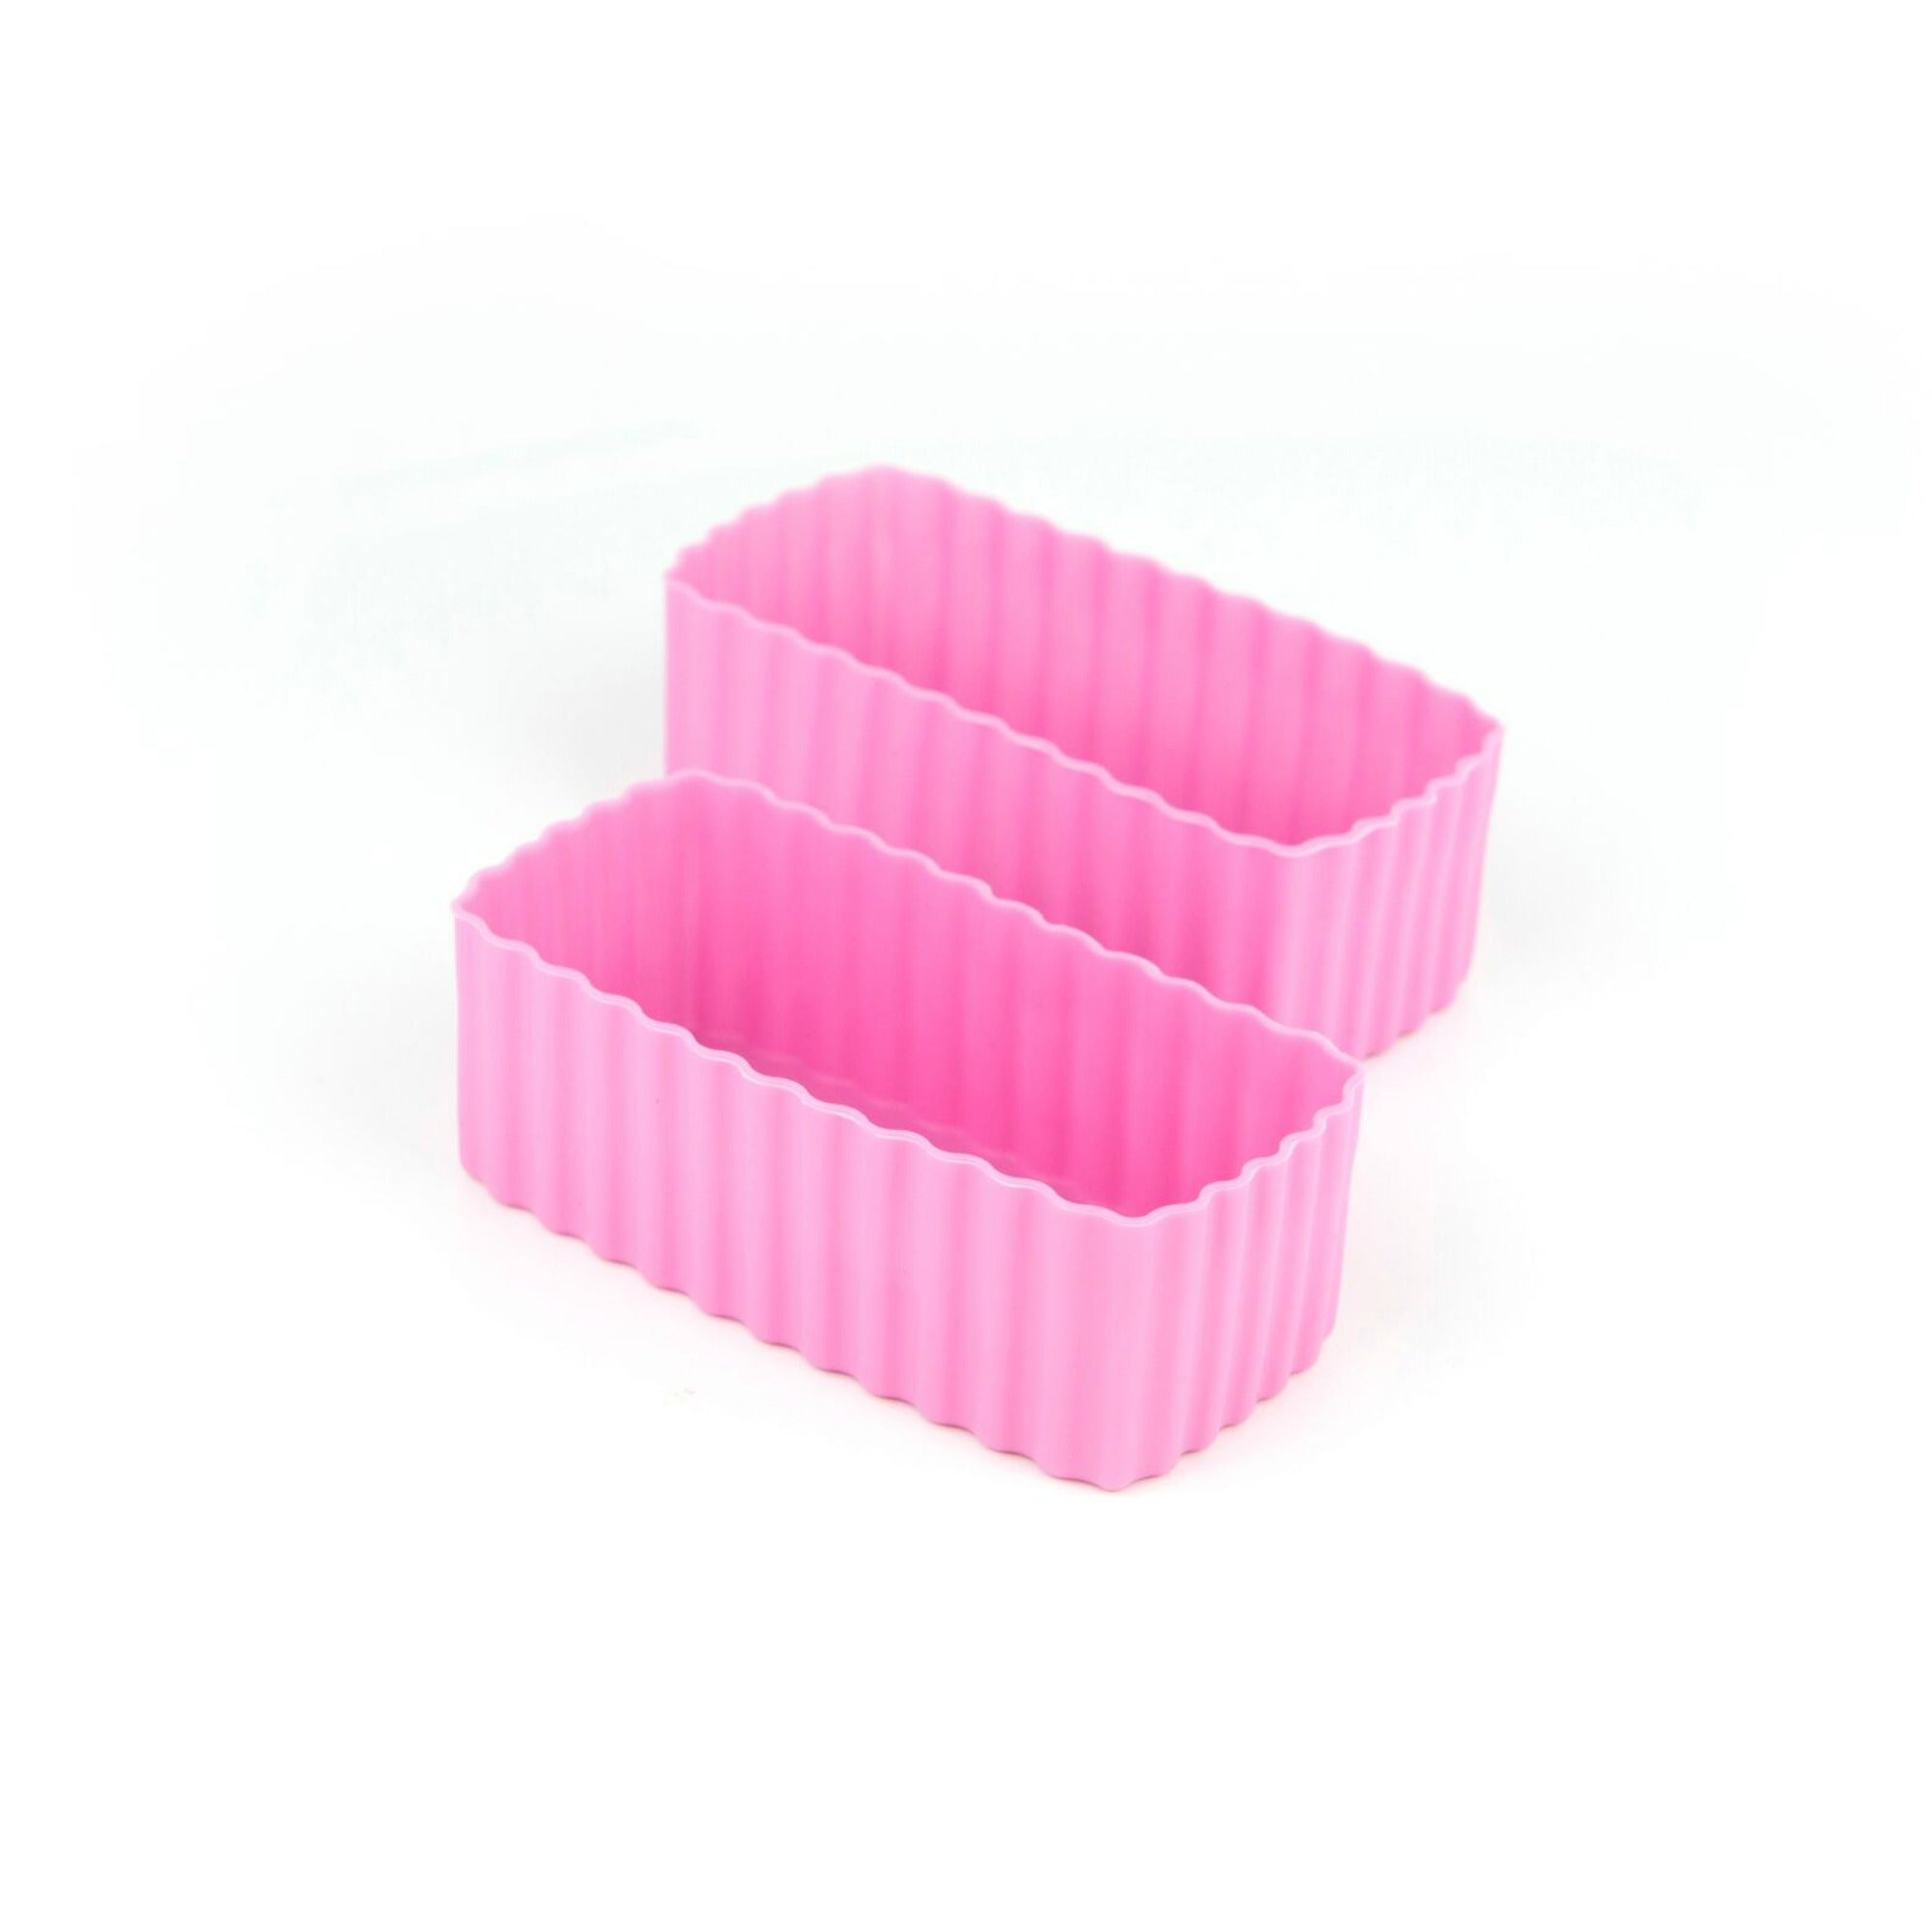 Little Lunch Box Co Rectangle Bento Cups - Pink